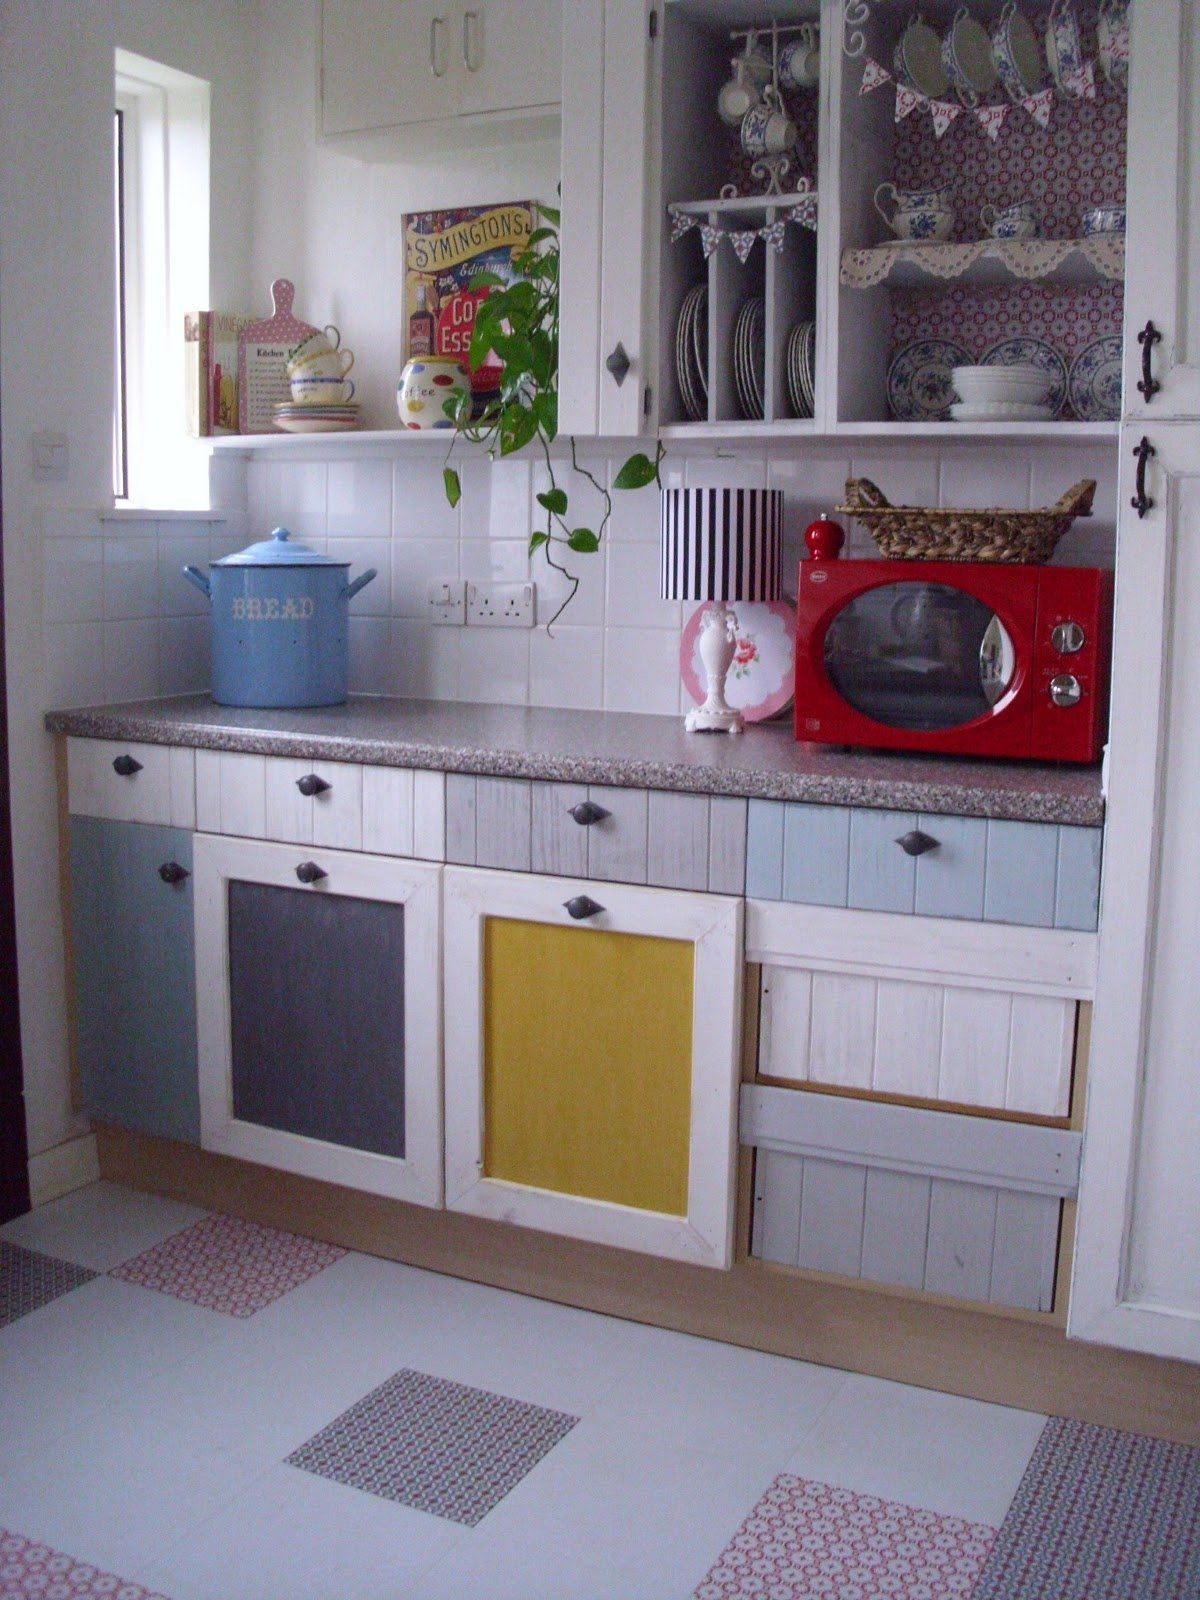 Upcycled Kitchen Cabinet Ideas